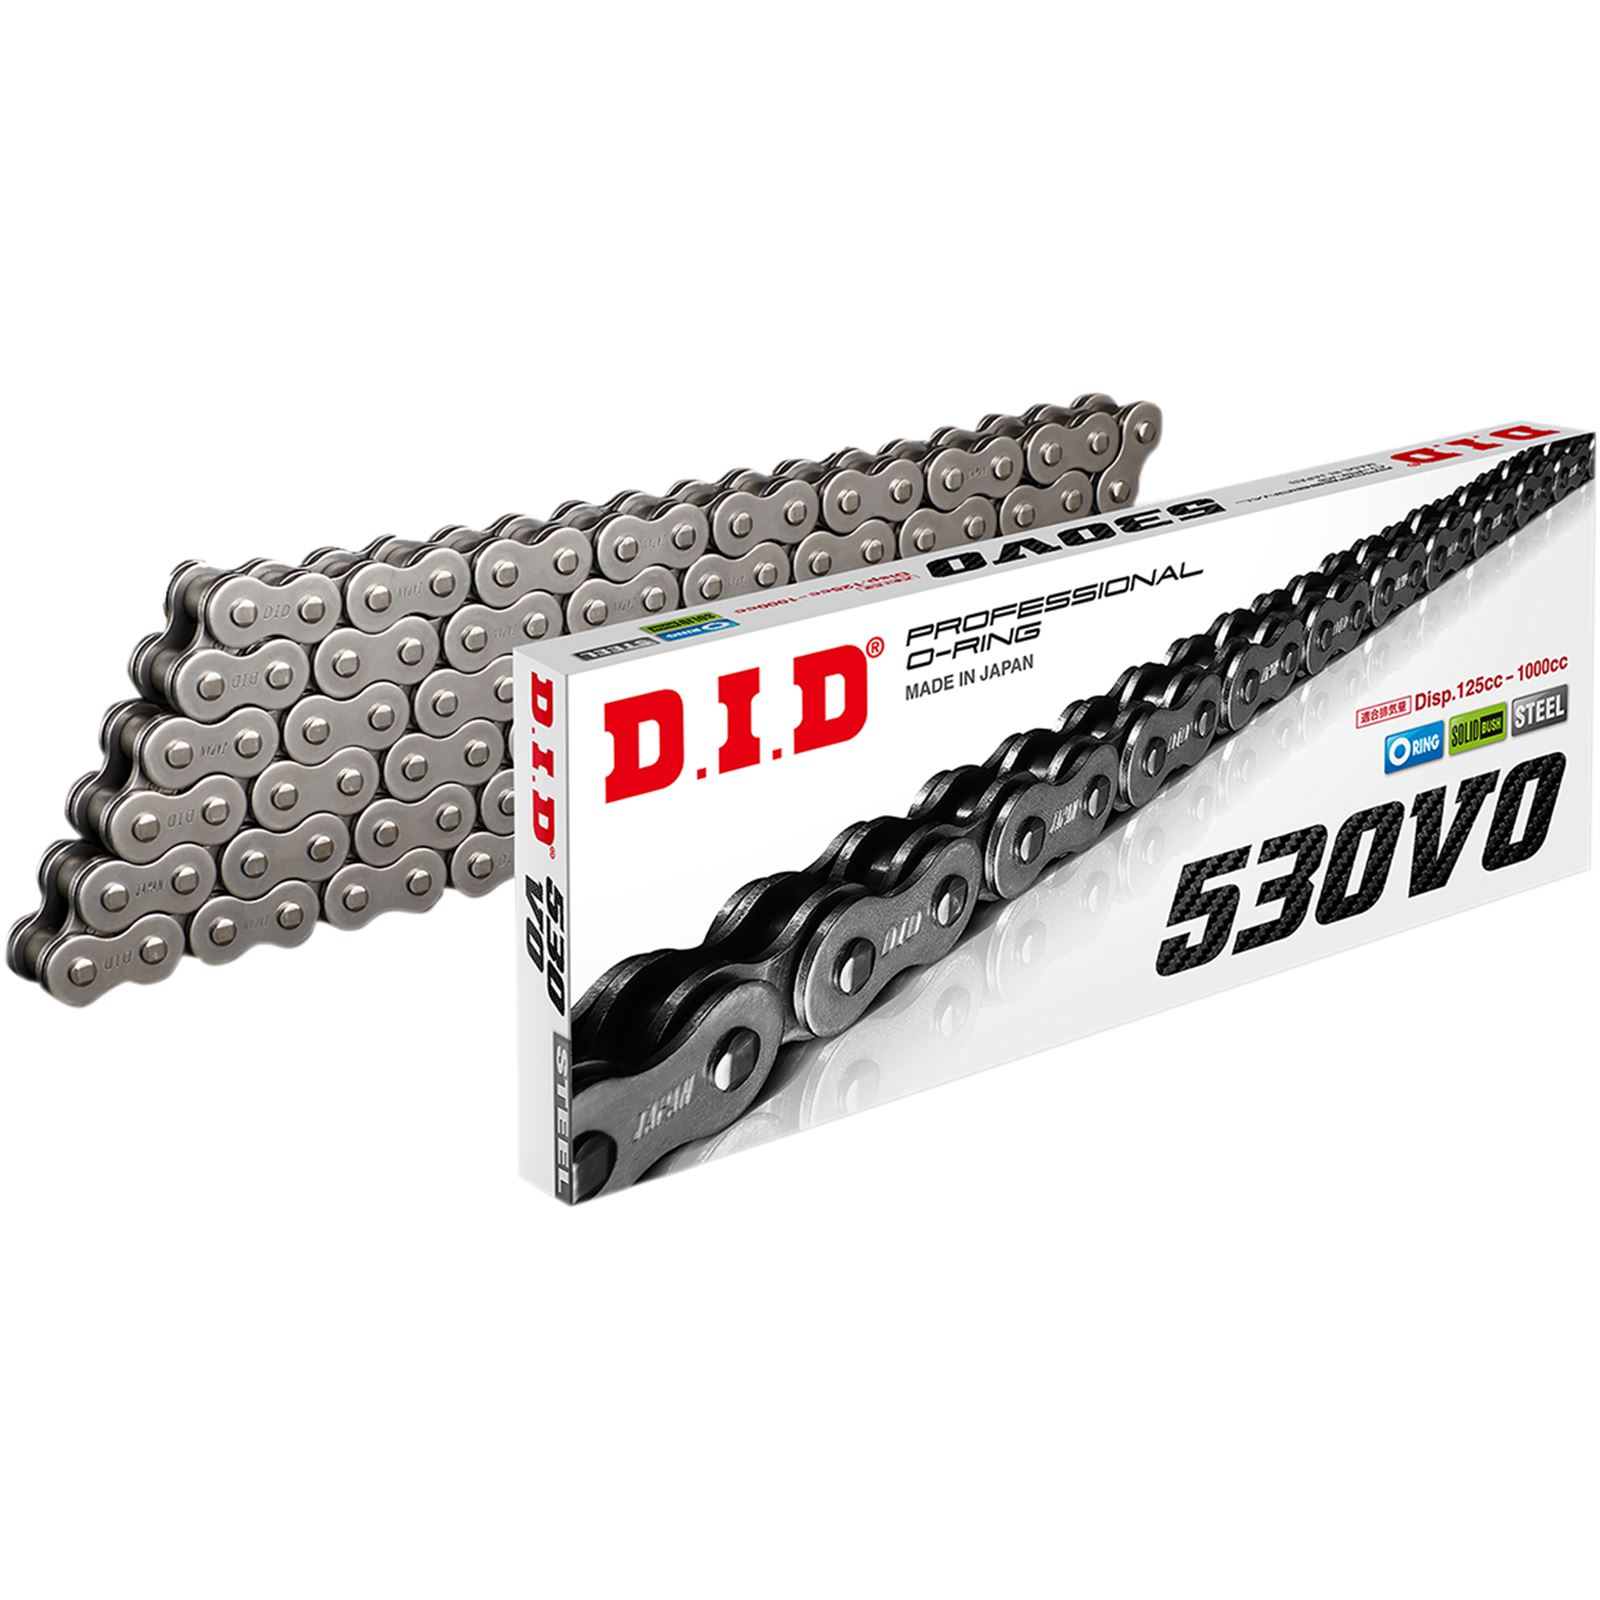 D.I.D 530 VO - Chain - 104 Links